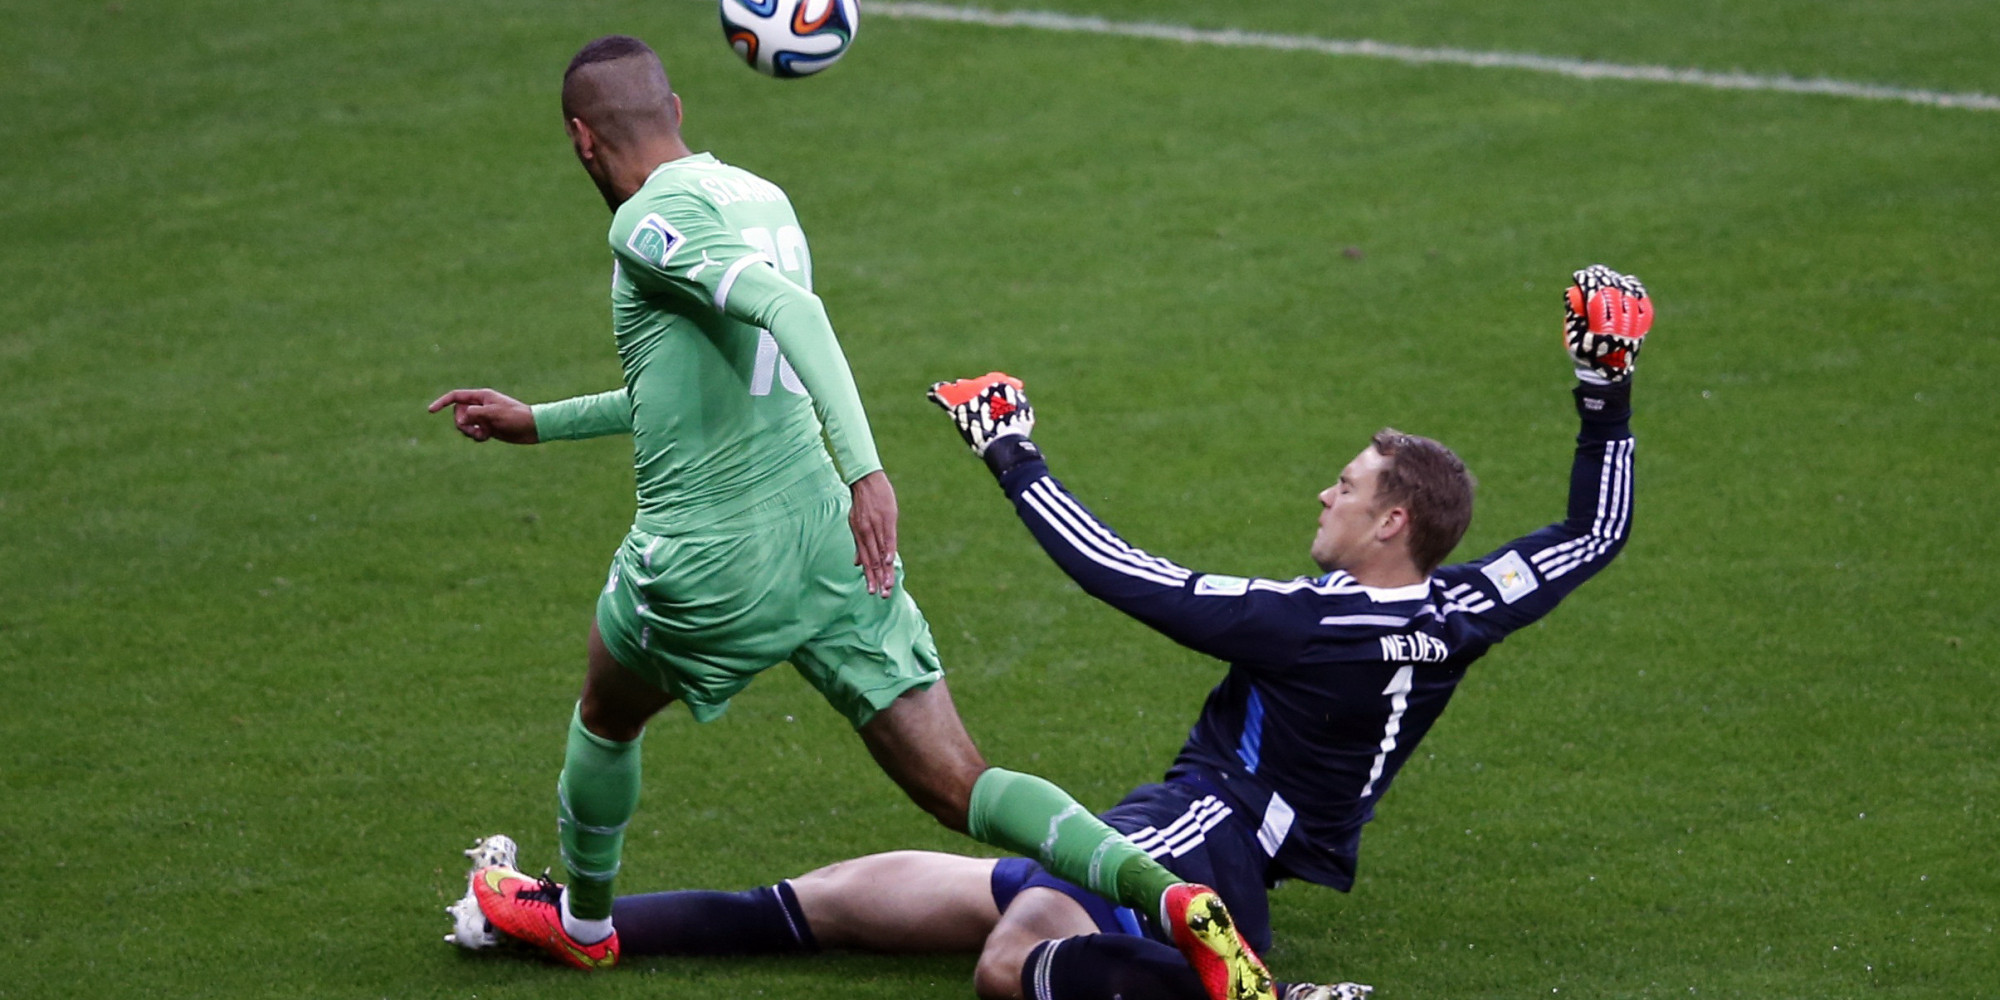 Germany's goalkeeper Neuer challenges Algeria's Slimani during their 2014 World Cup round of 16 game at the Beira Rio stadium in Porto Alegre